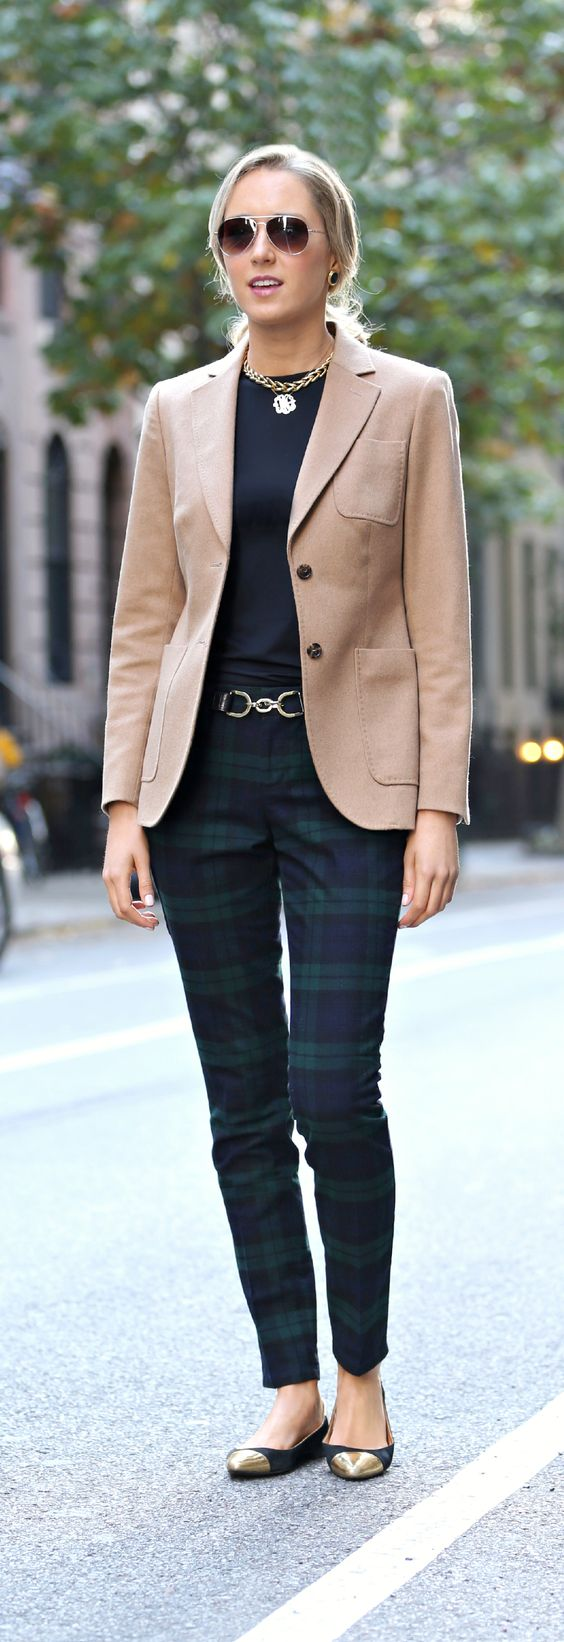 Classy Cubicle Cubicles And Pants On Pinterest